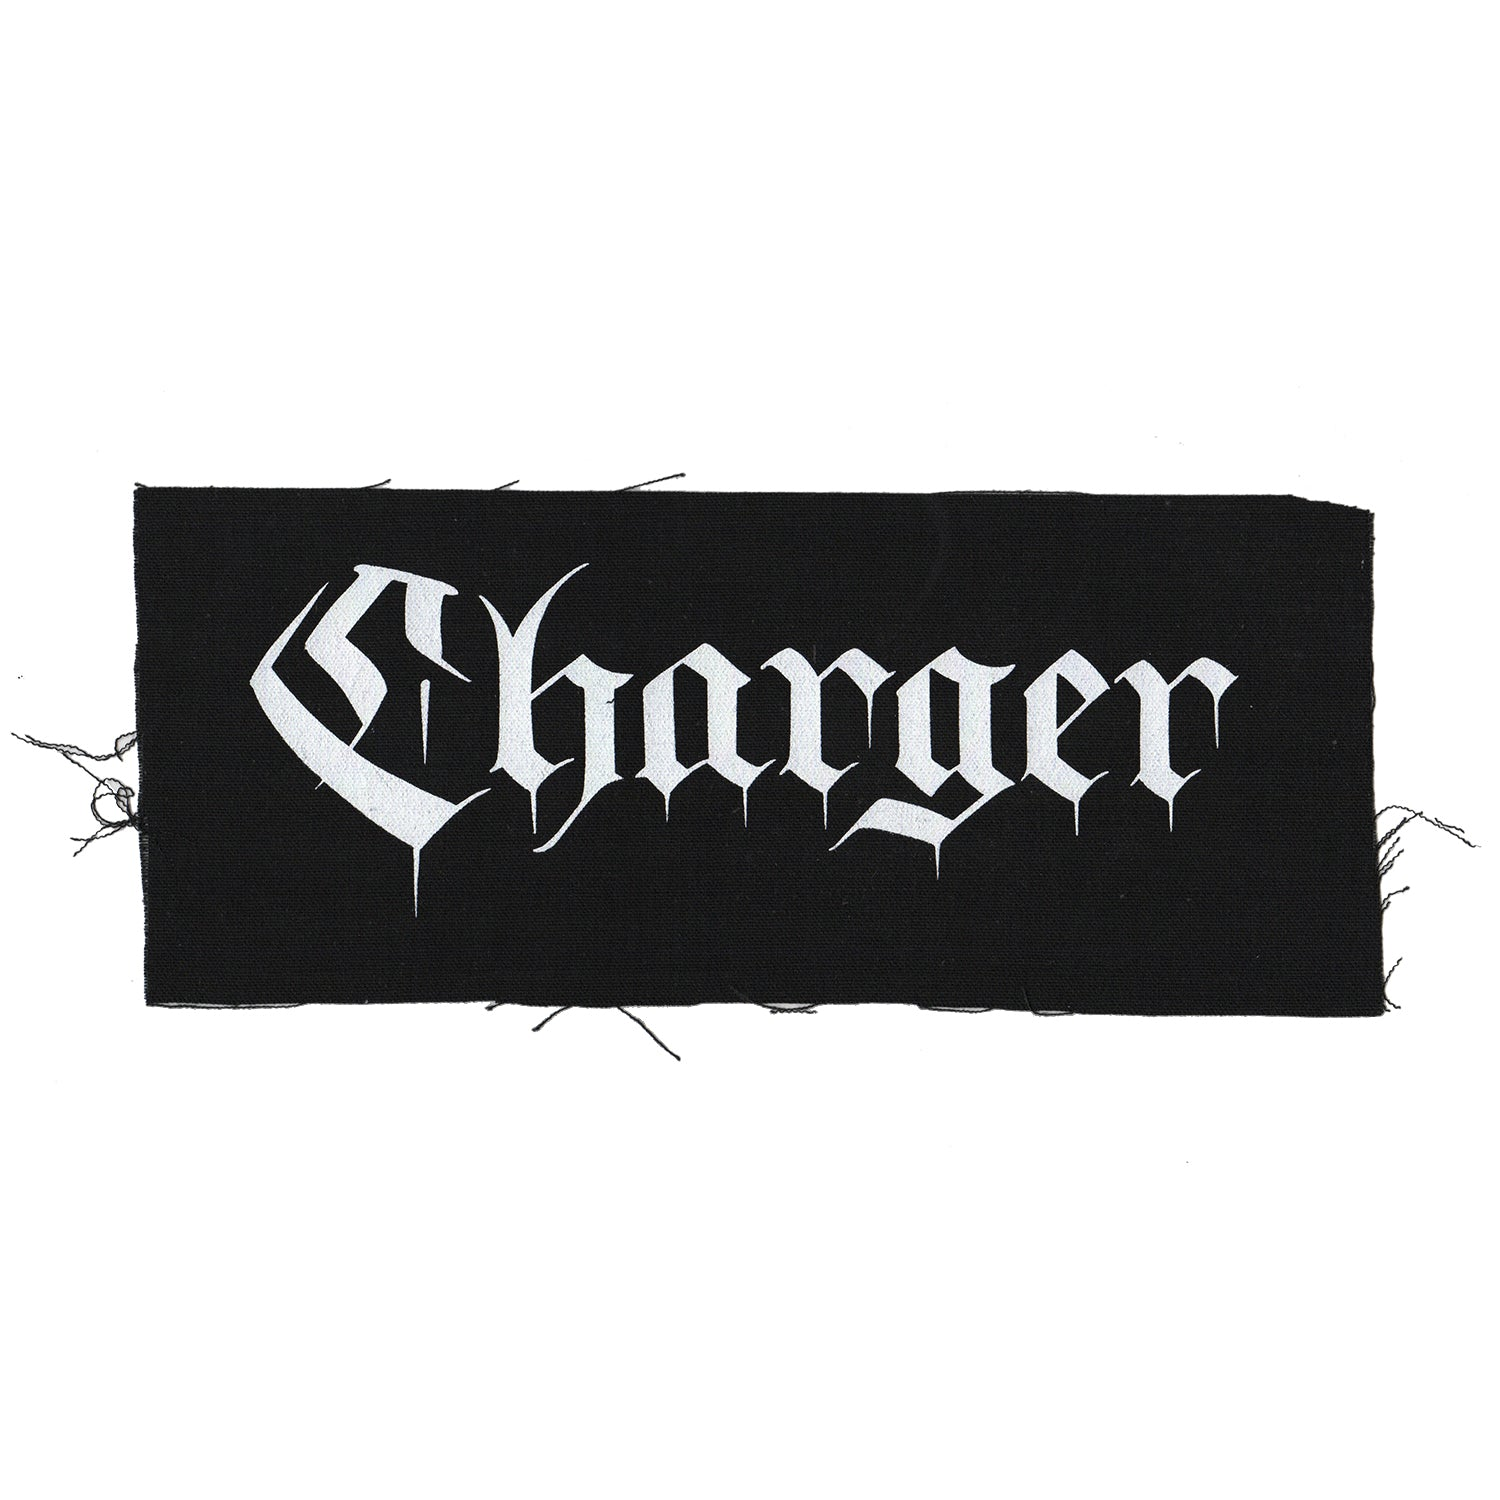 "Charger - Text Logo - Black - Patch - Cloth - Screenprinted - 12"" x 4"""